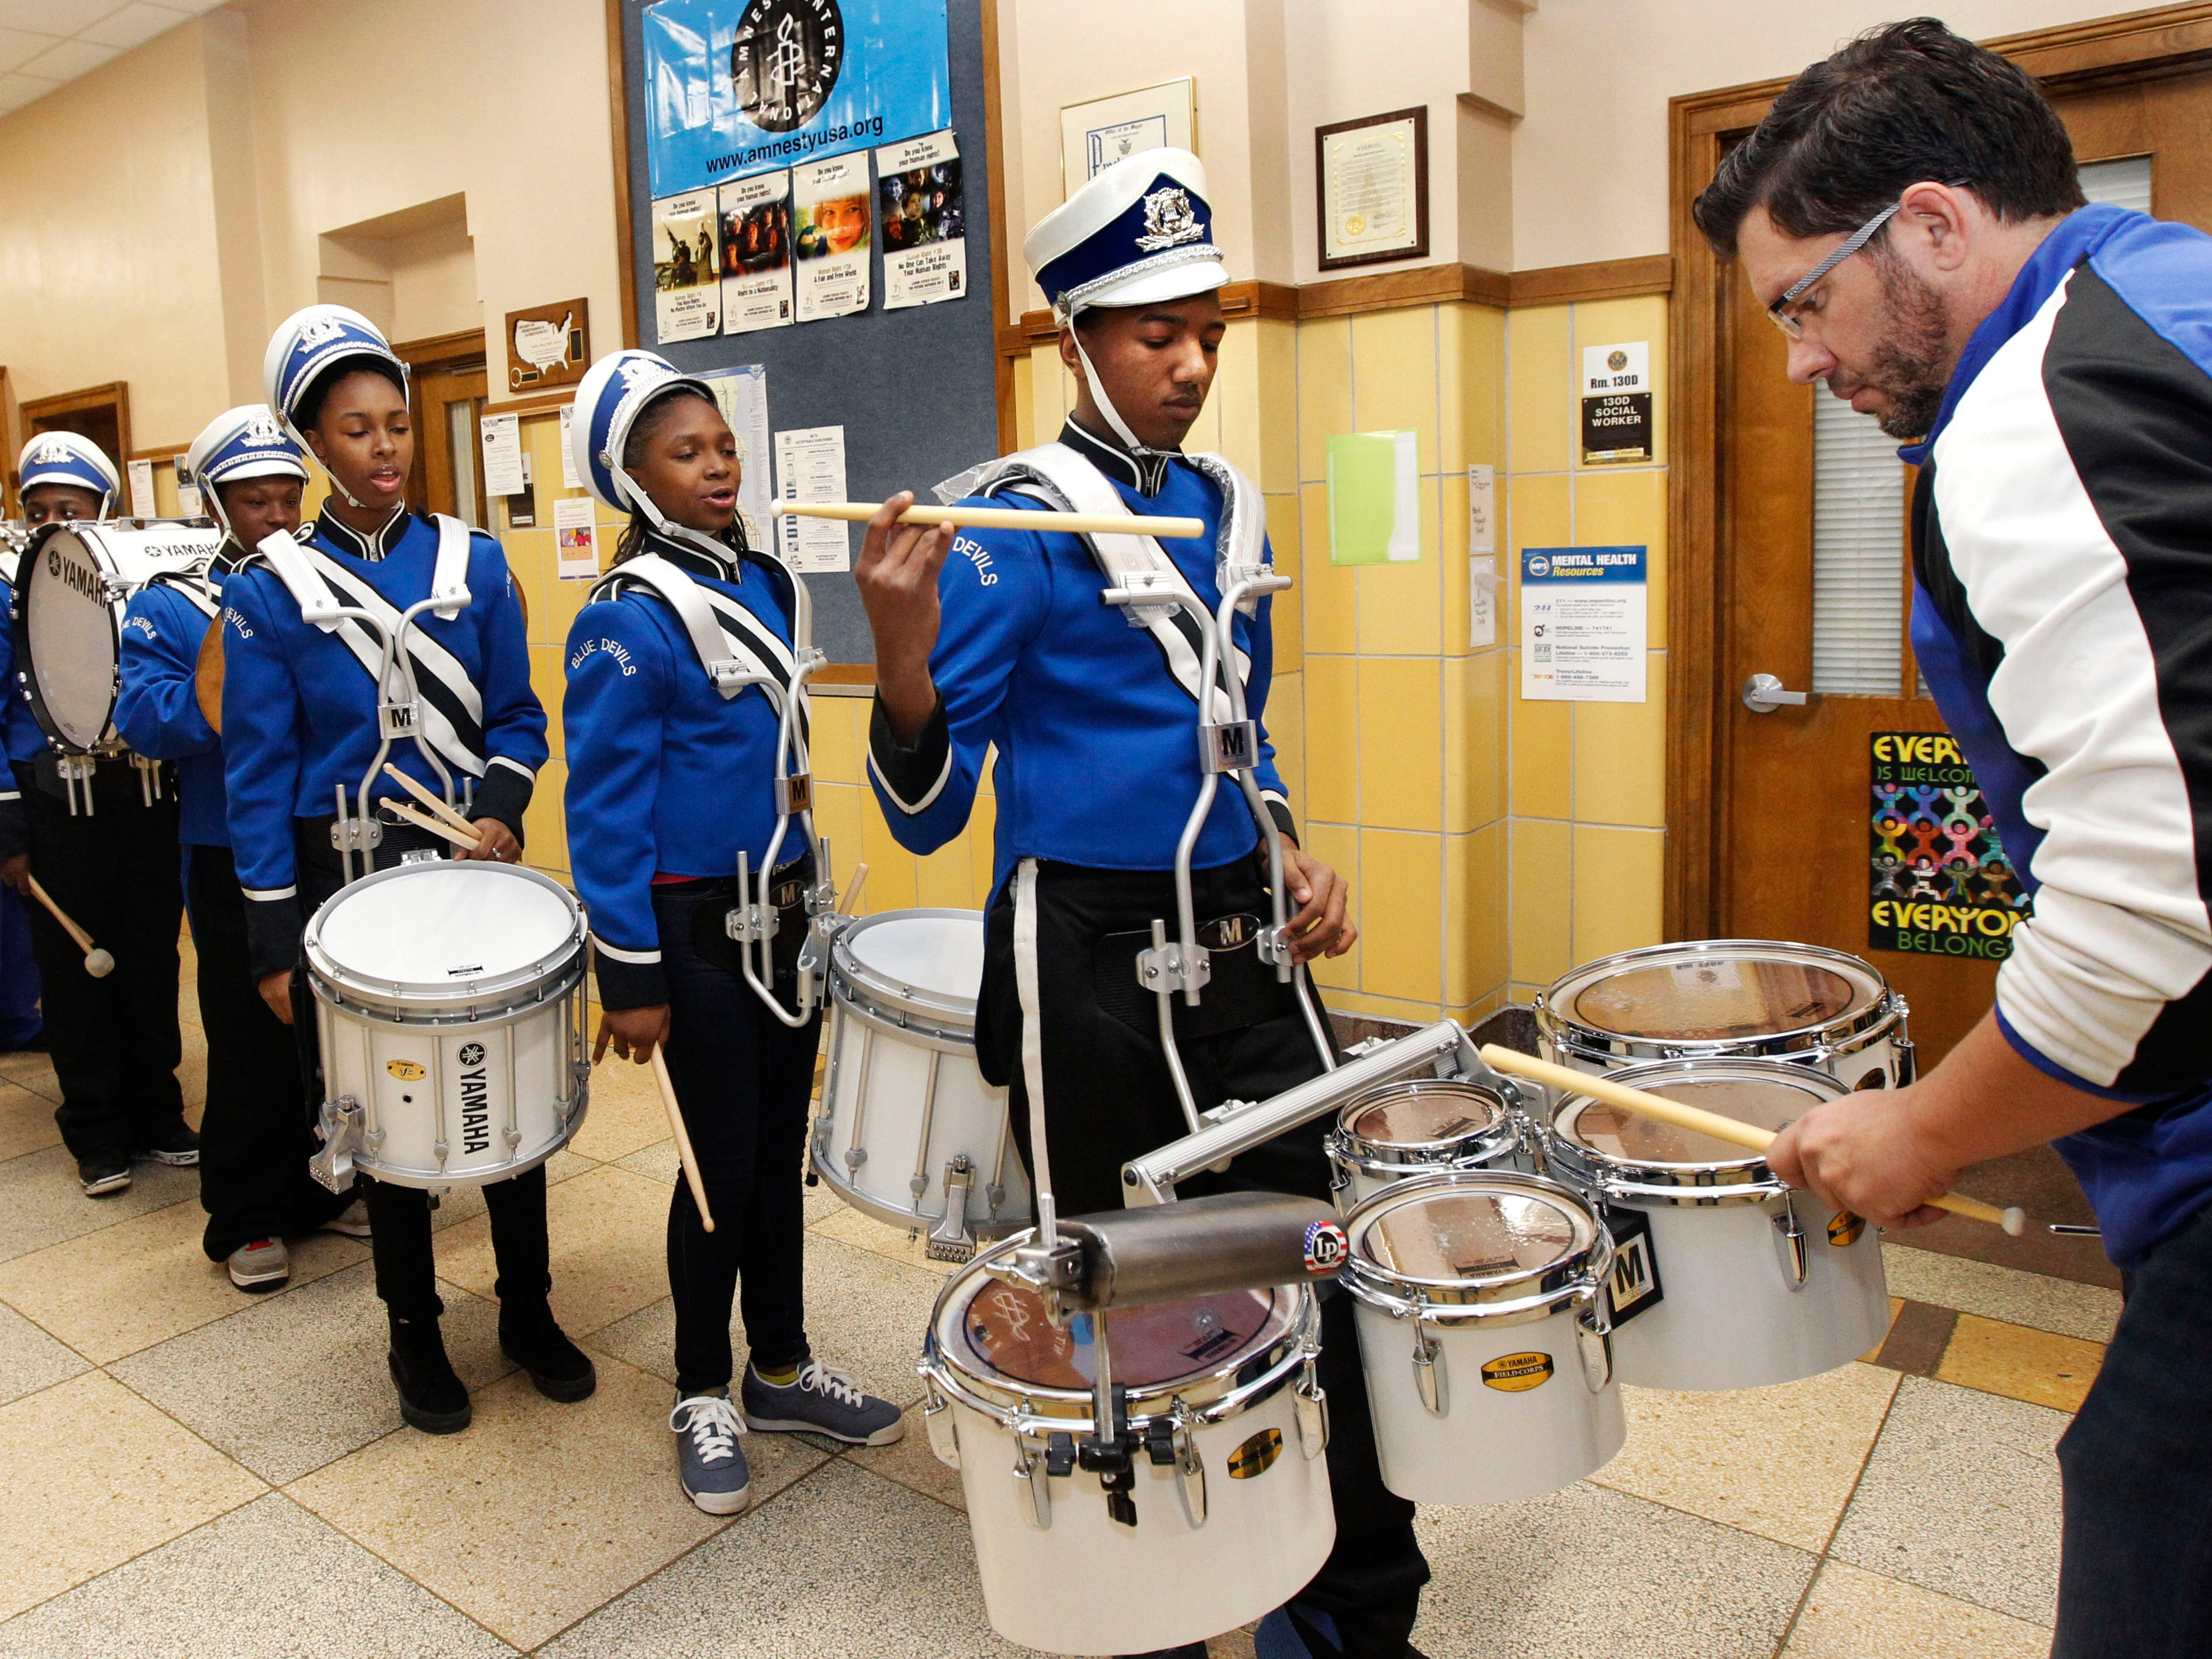 """Paul Braun, co-director of the North Division High School Drumline, right, checks Maleak Taylor's musical instruments, before the start of the MPS Hosts City Drumline Competition on Saturday, Dec. 8, 2018 at Rufus King High School. """"Most freshmen come in and they act like freshmen. You don't see that from Maleak. He's a real leader and we (the drum line) will go as he goes. He's the leader,"""" said Braun."""